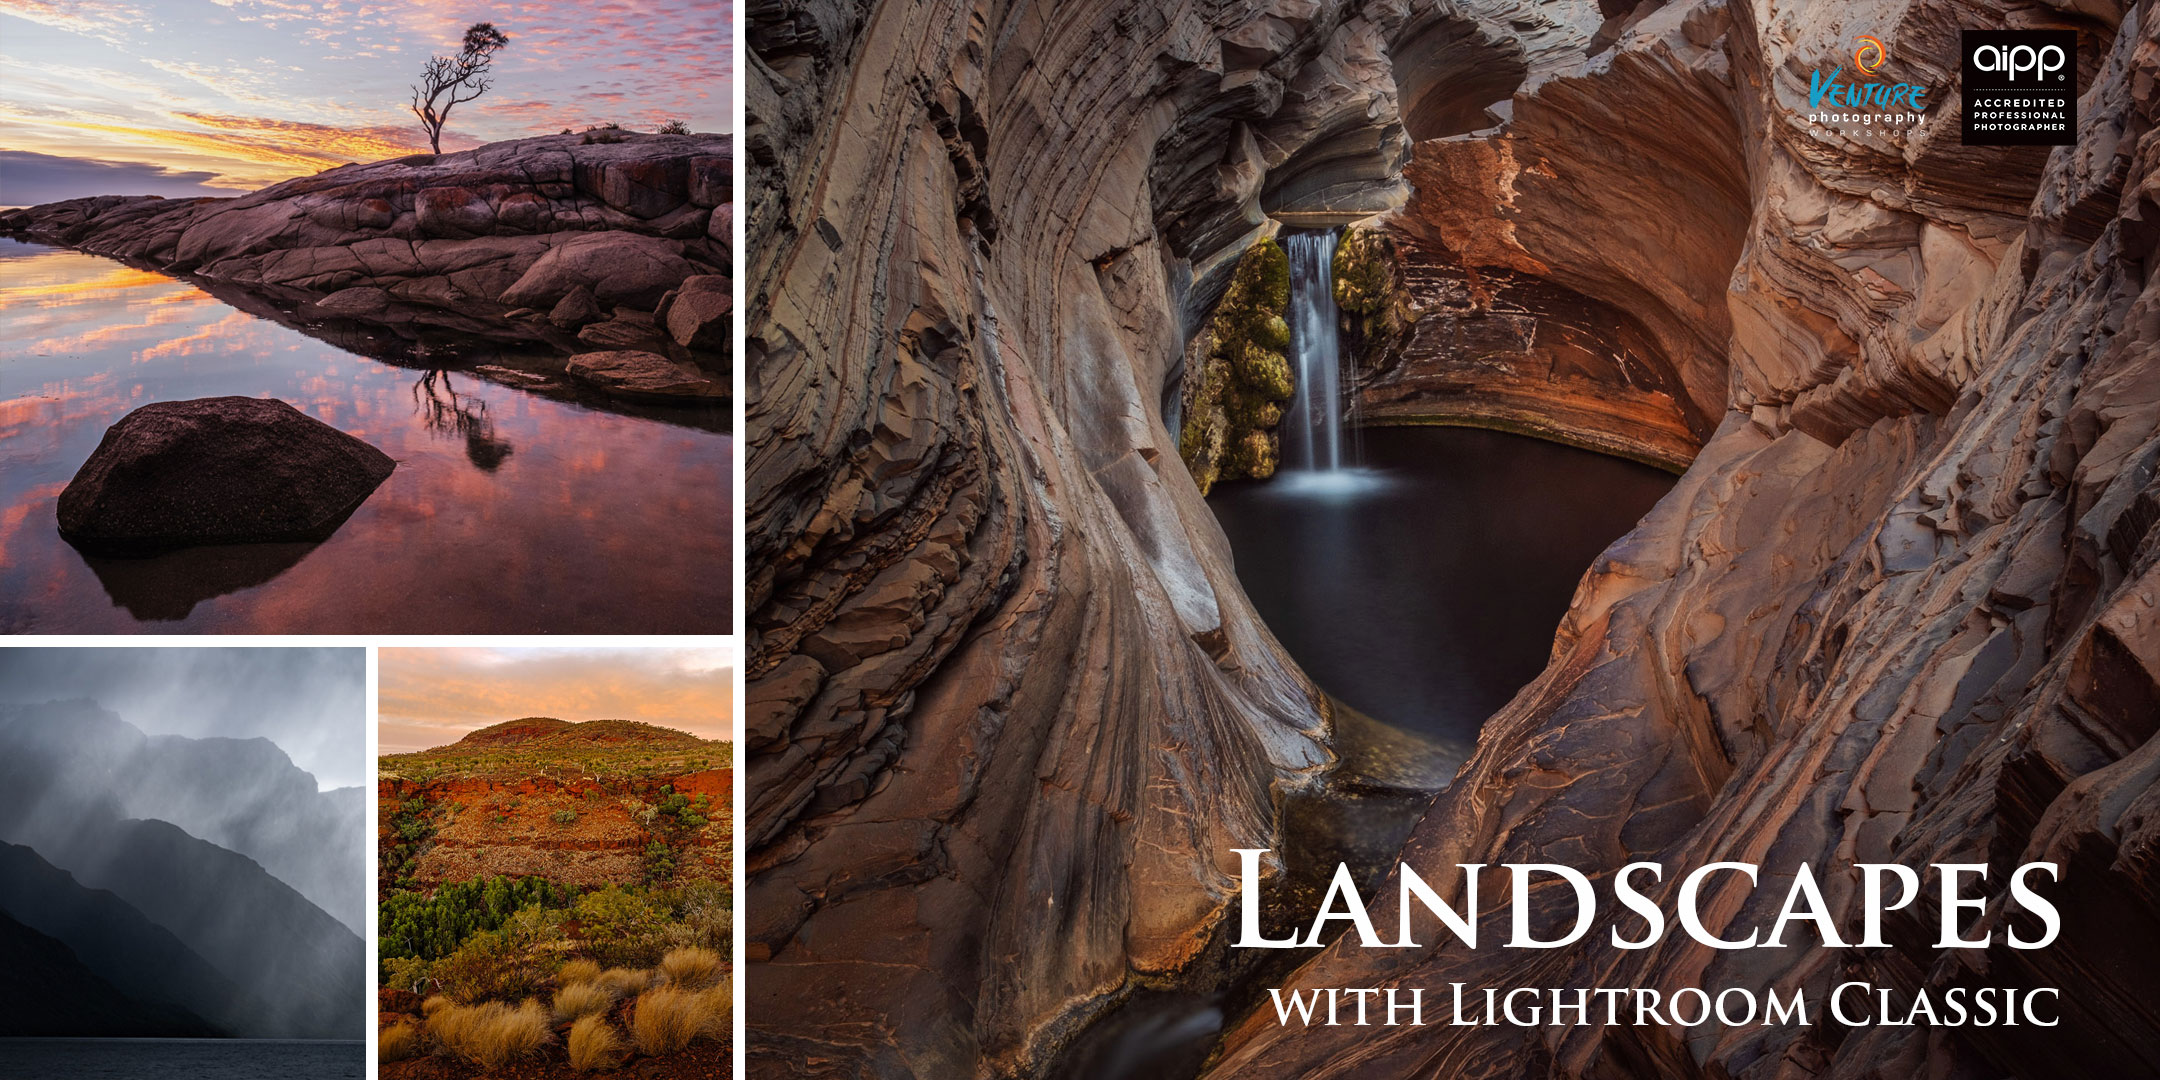 Landscapes with Lightroom Classic